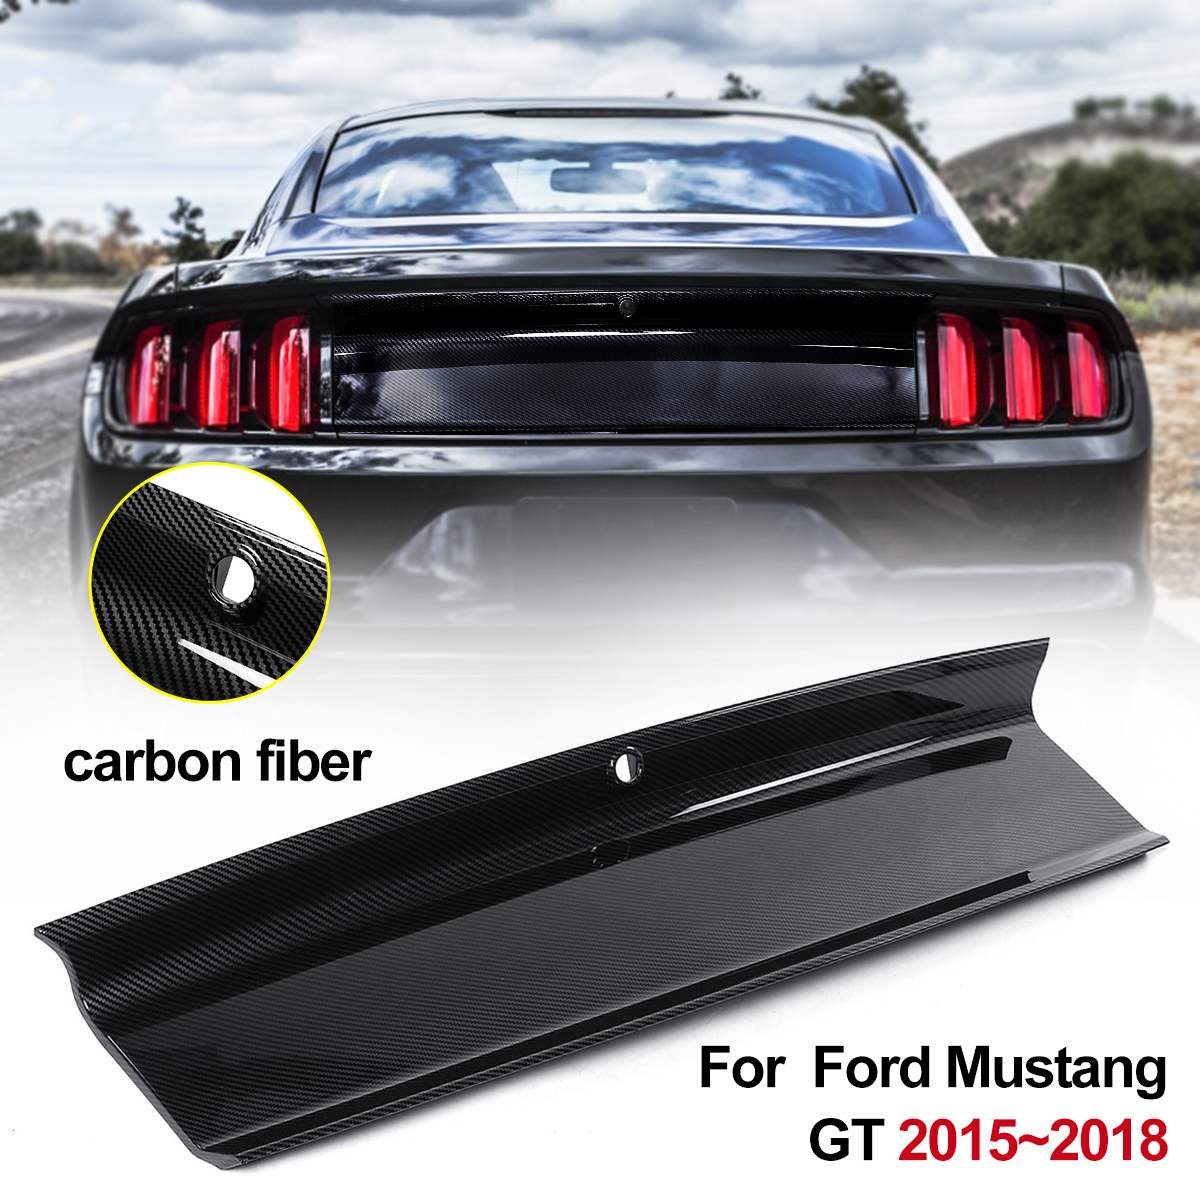 Carbon Fiber ABS Rear Lid Trunk Decklid Panel Cover Kit Trunk Boot Lid Panel For Ford For Mustang 2015 2016 2017 2018 2019